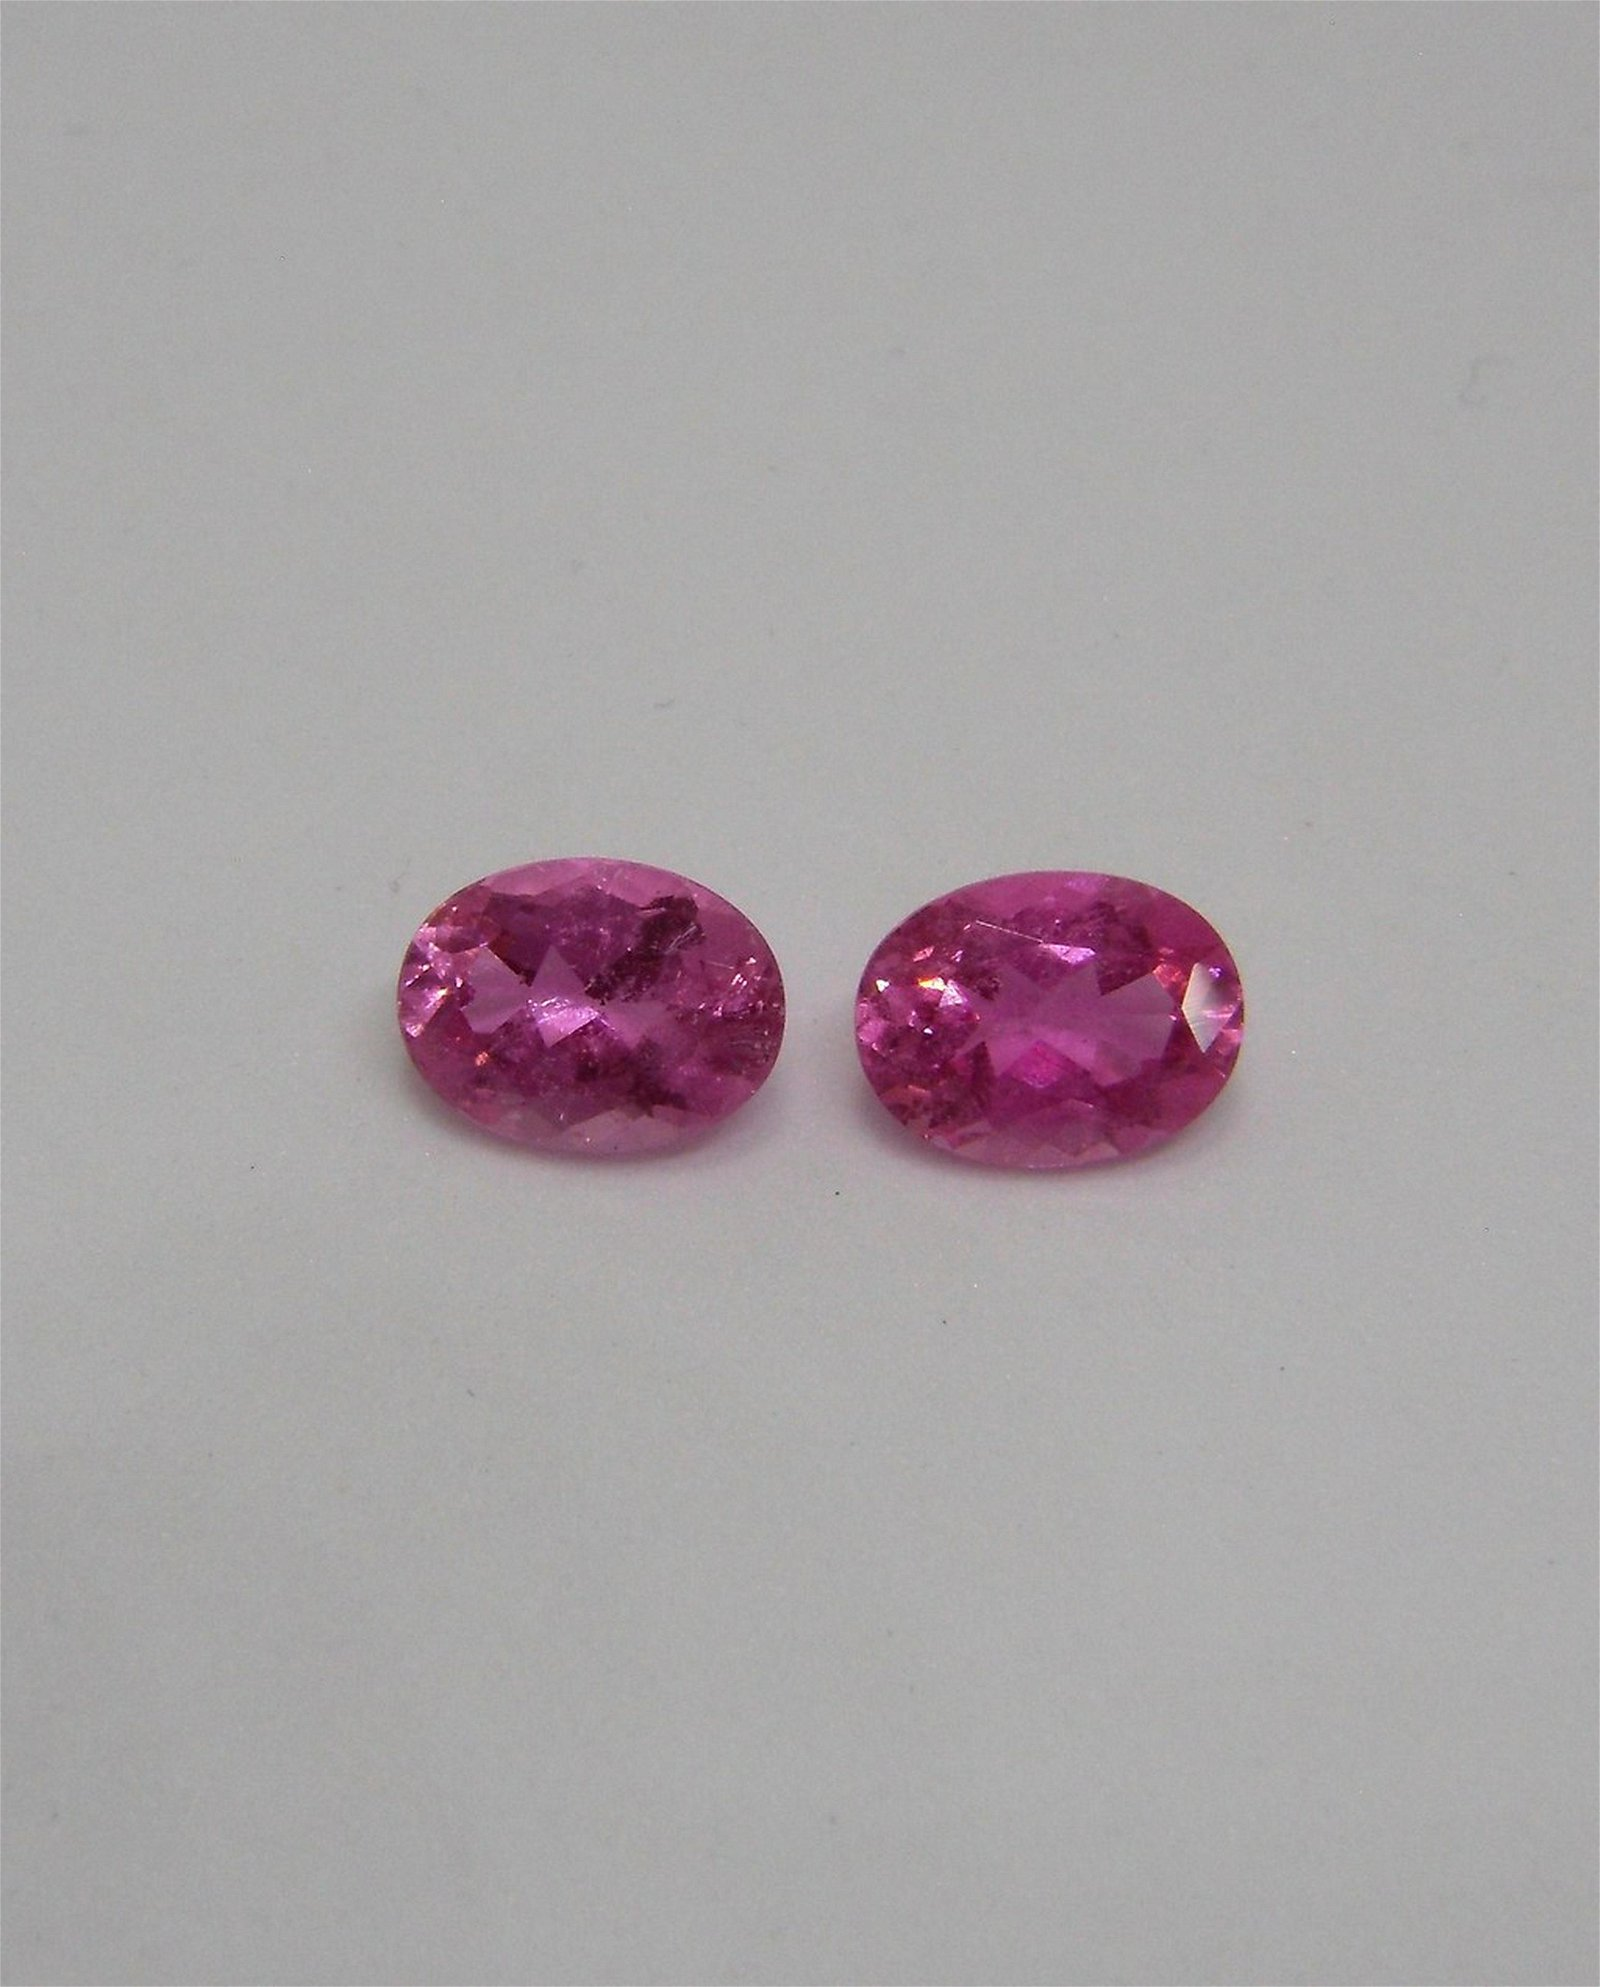 Rubellite Tourmaline Pair Certified - 2.59 ct